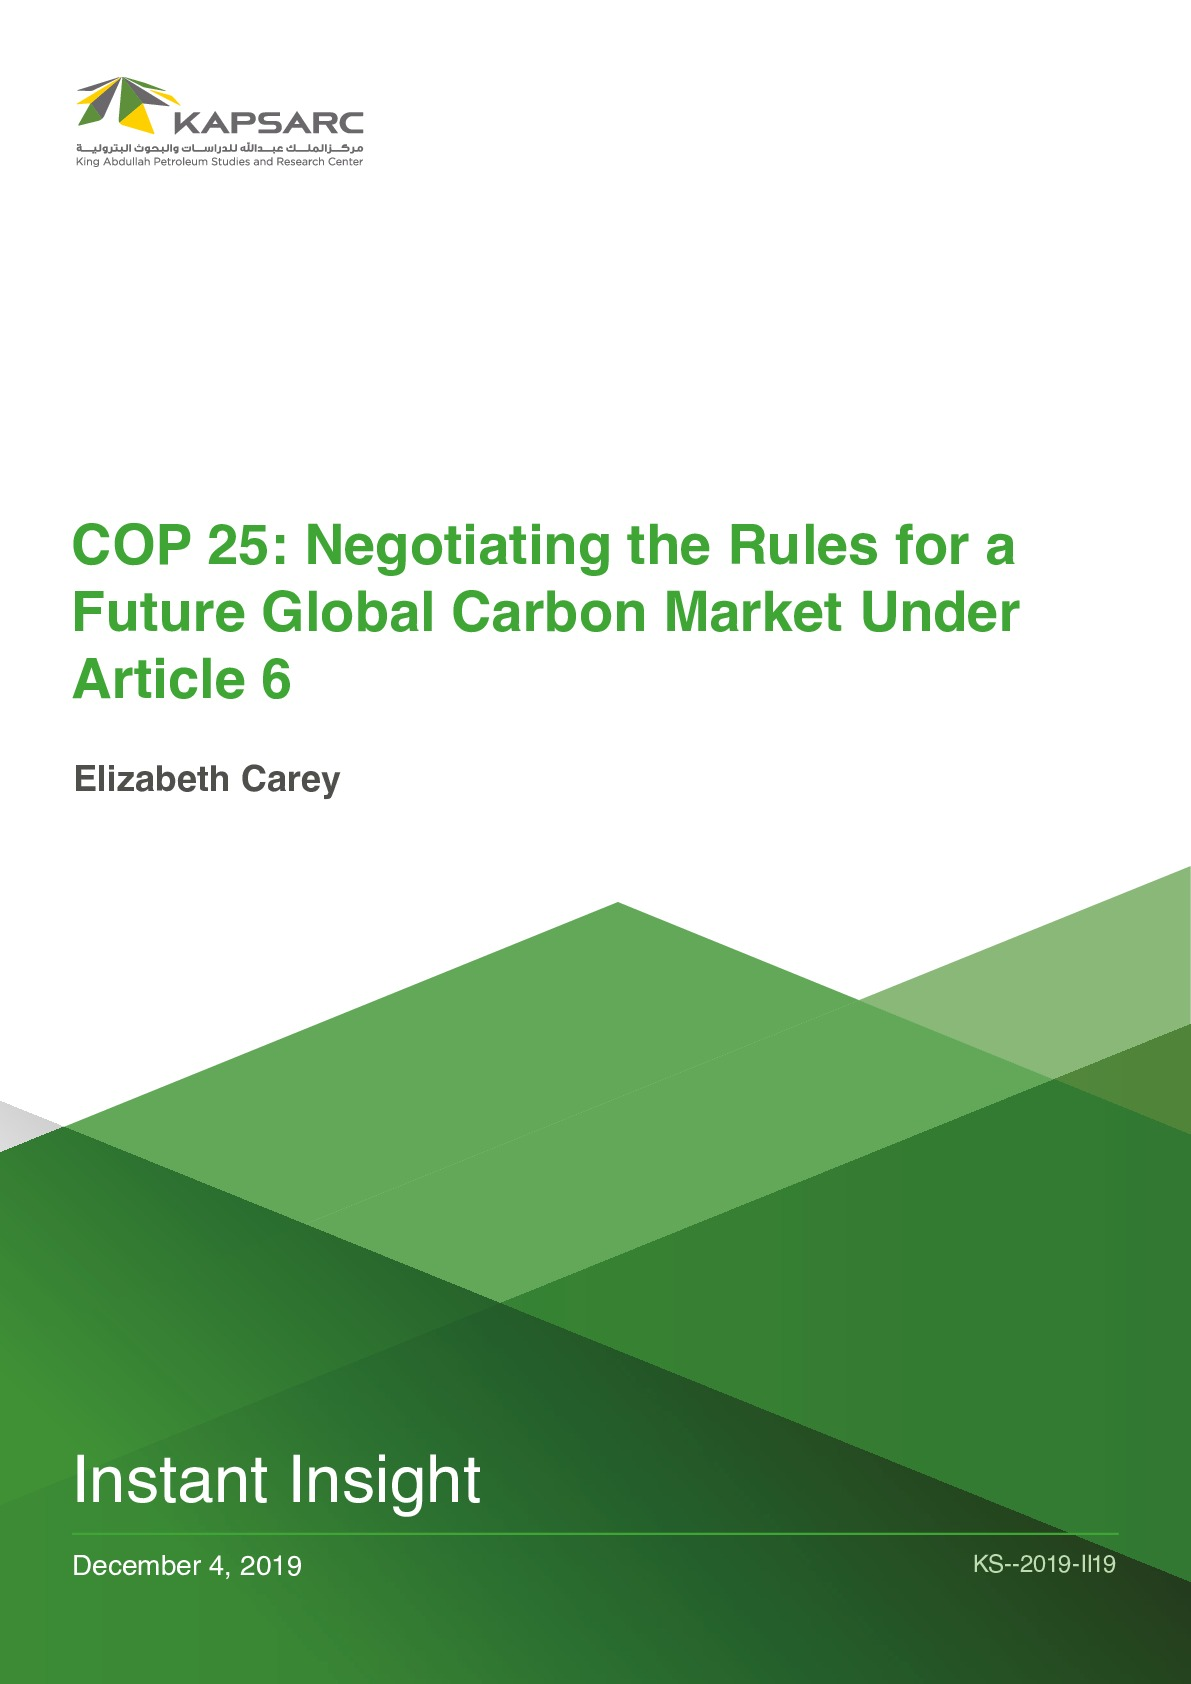 COP 25: Negotiating the Rules for a Future Global Carbon Market Under Article 6